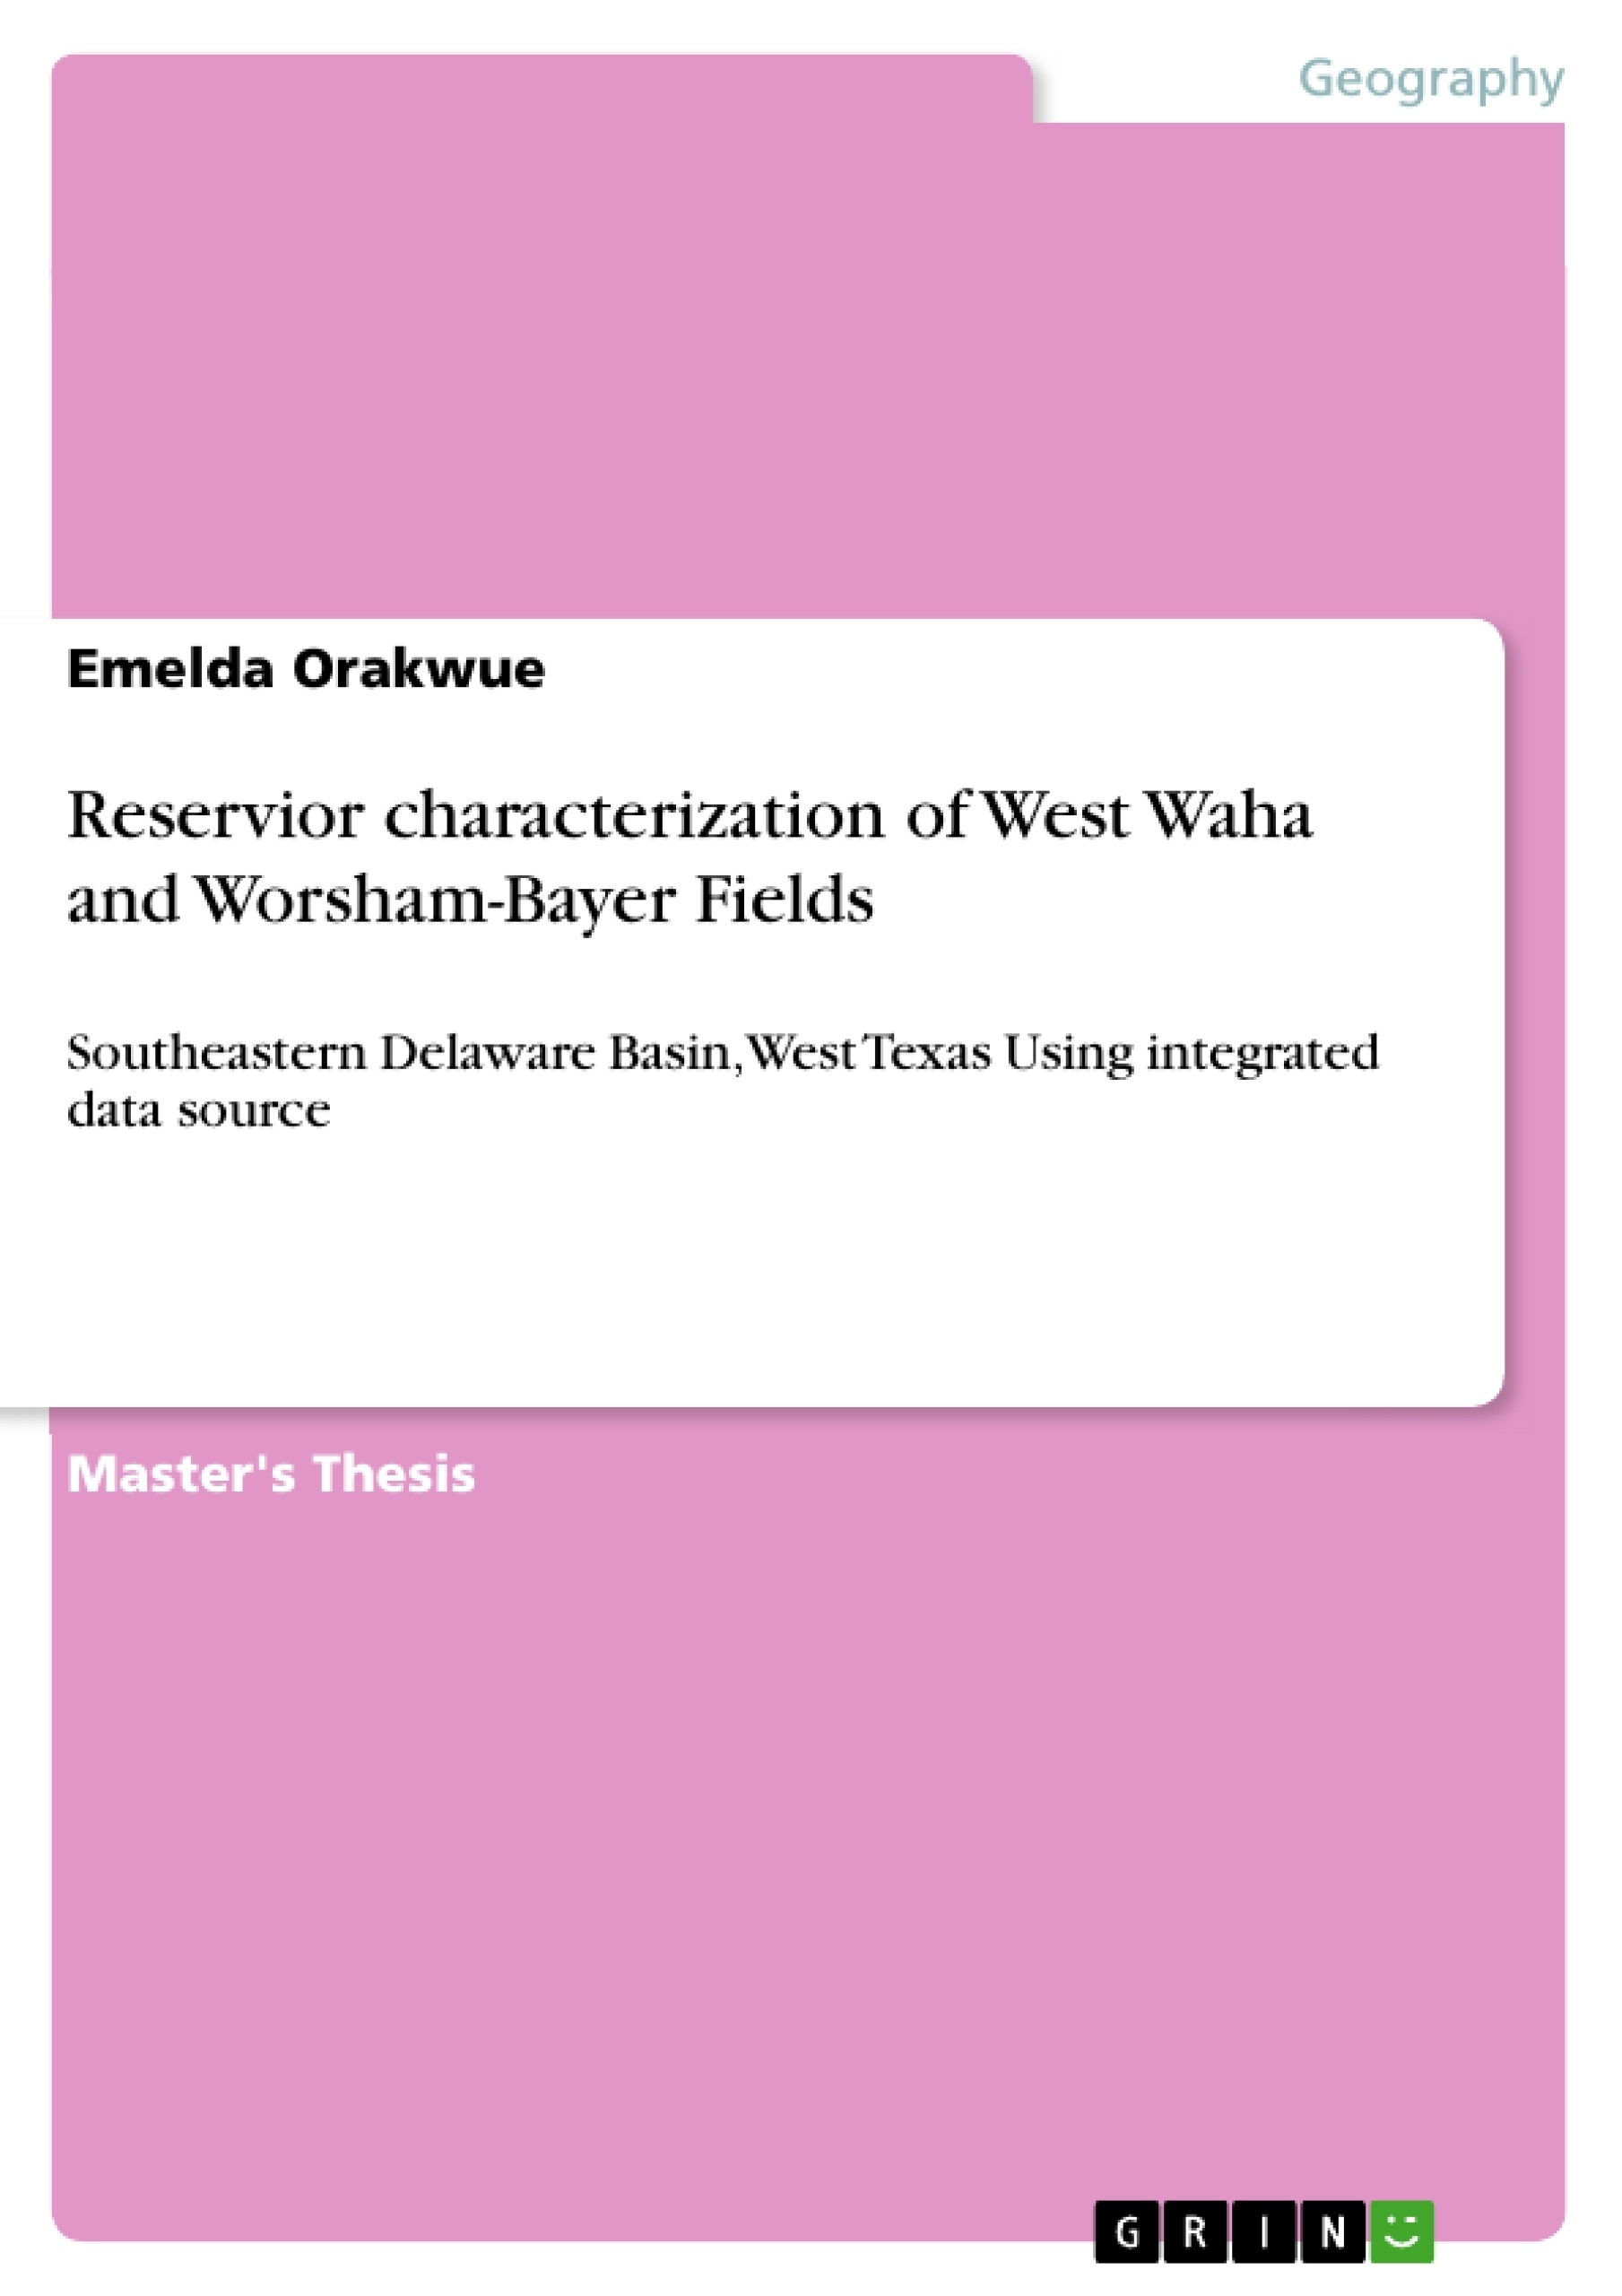 GRIN - Reservior characterization of West Waha and Worsham-Bayer Fields